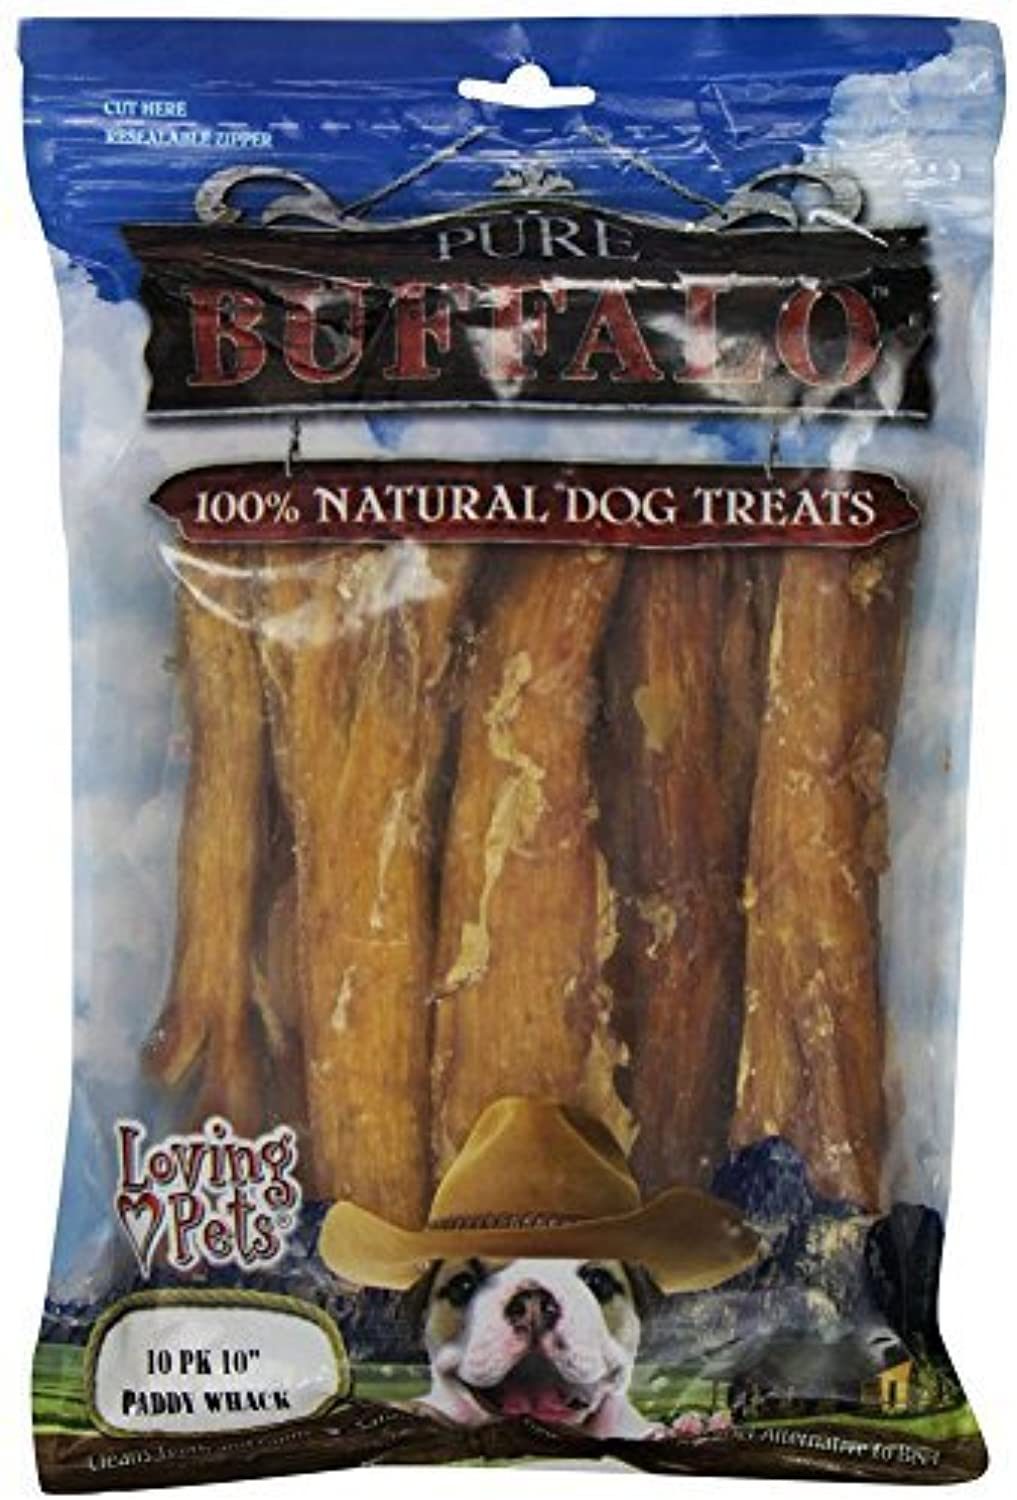 Loving Pets Pure Buffalo 10Inch Backstrap Tendon Dog Treat, [Set of 2] by Loving Pets